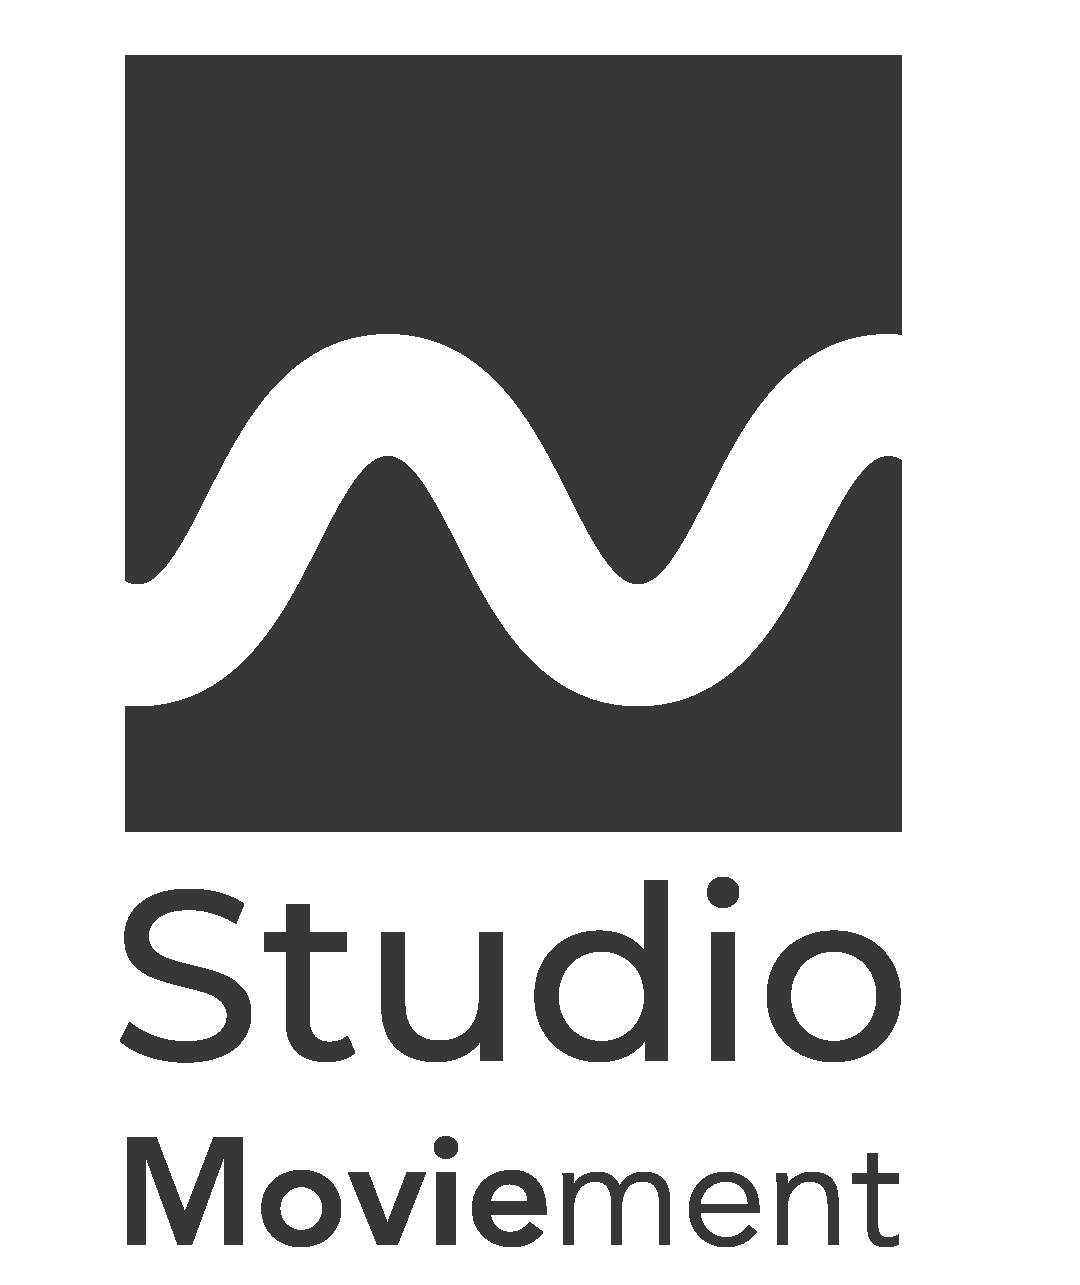 Studio Moviement